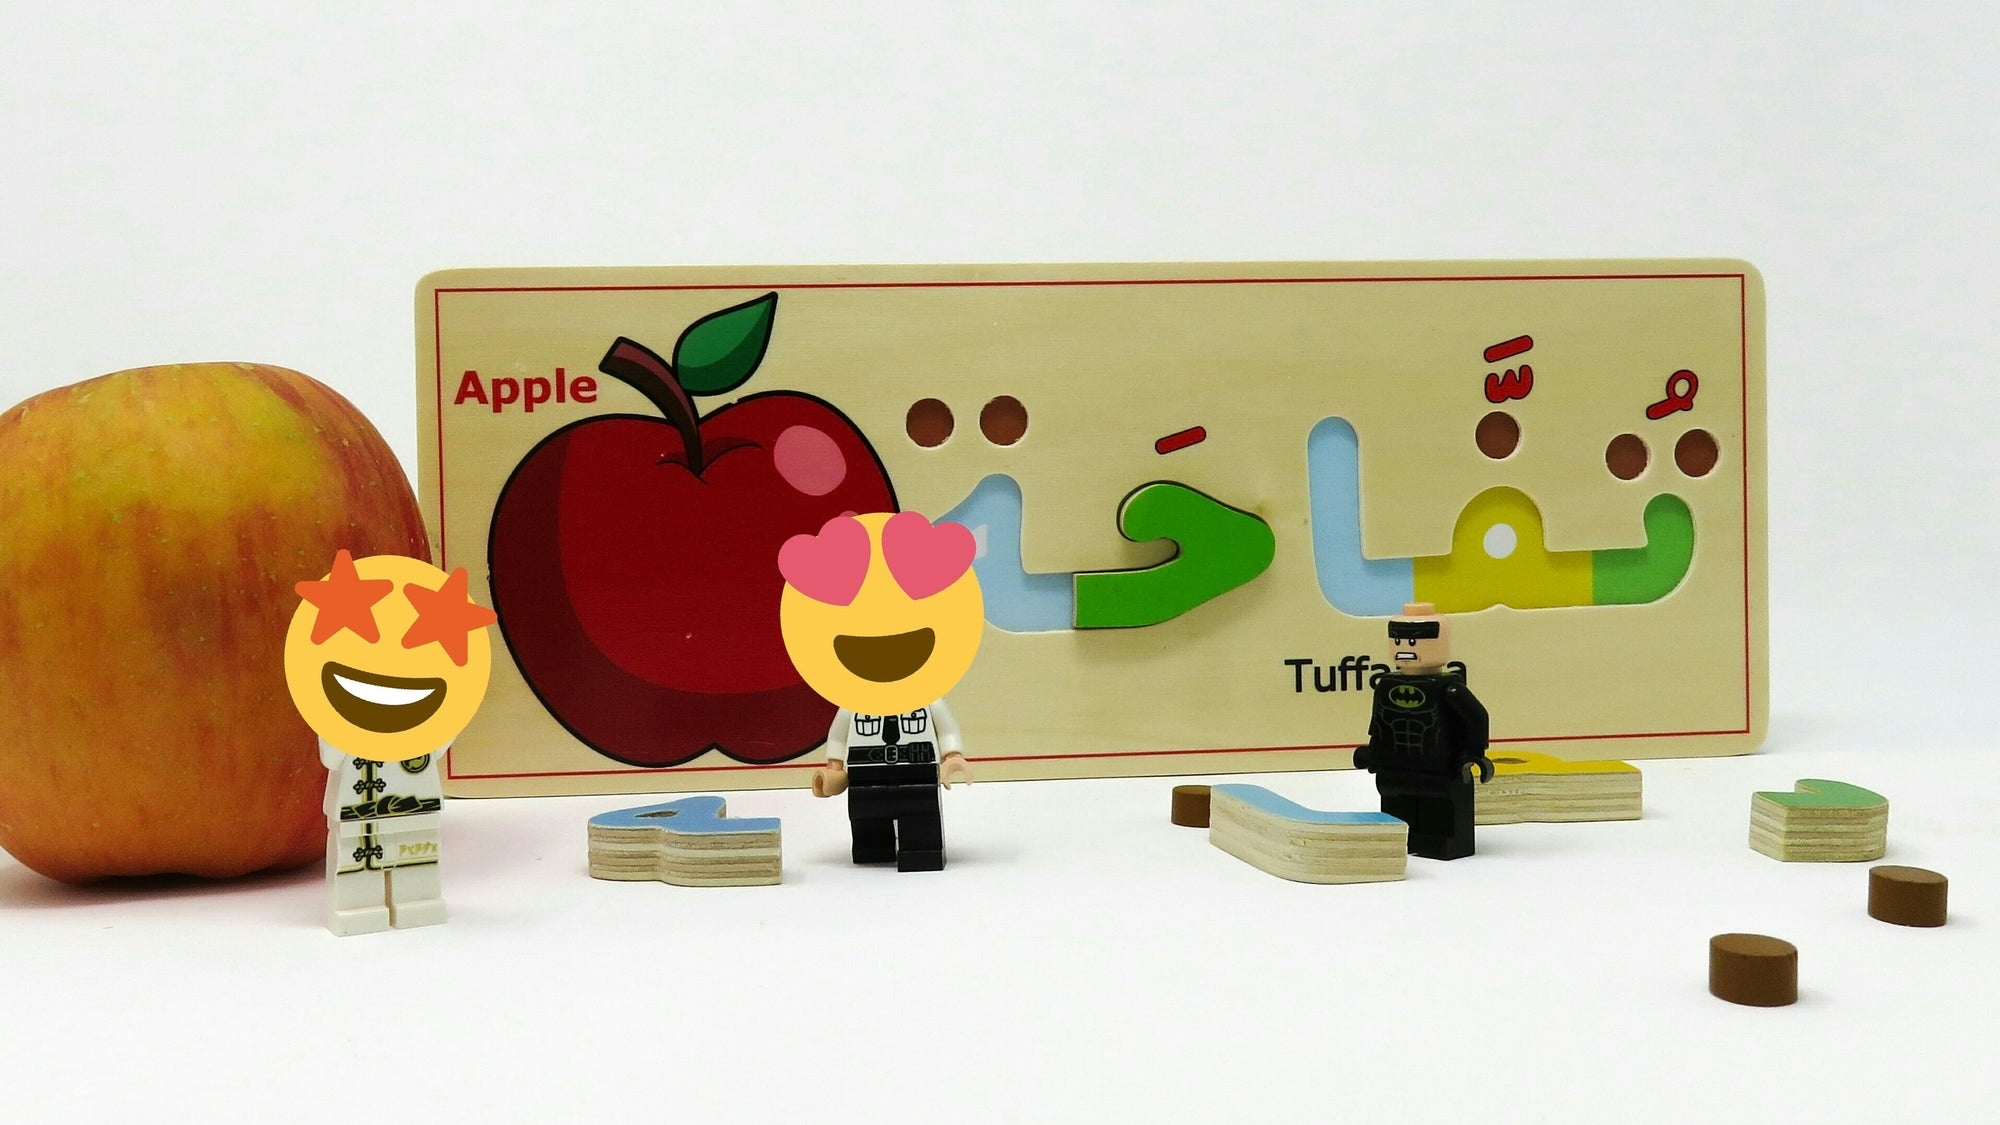 Arabic Spell & Learn puzzle-ThinkerNation-Learn-Arabic-Vocabulary-Spelling-Alphabet-See-Letter-Forms-Apple-Game-Fun-Islamic-Muslim-Toy-homeschool-pre-school-Eid-Gift